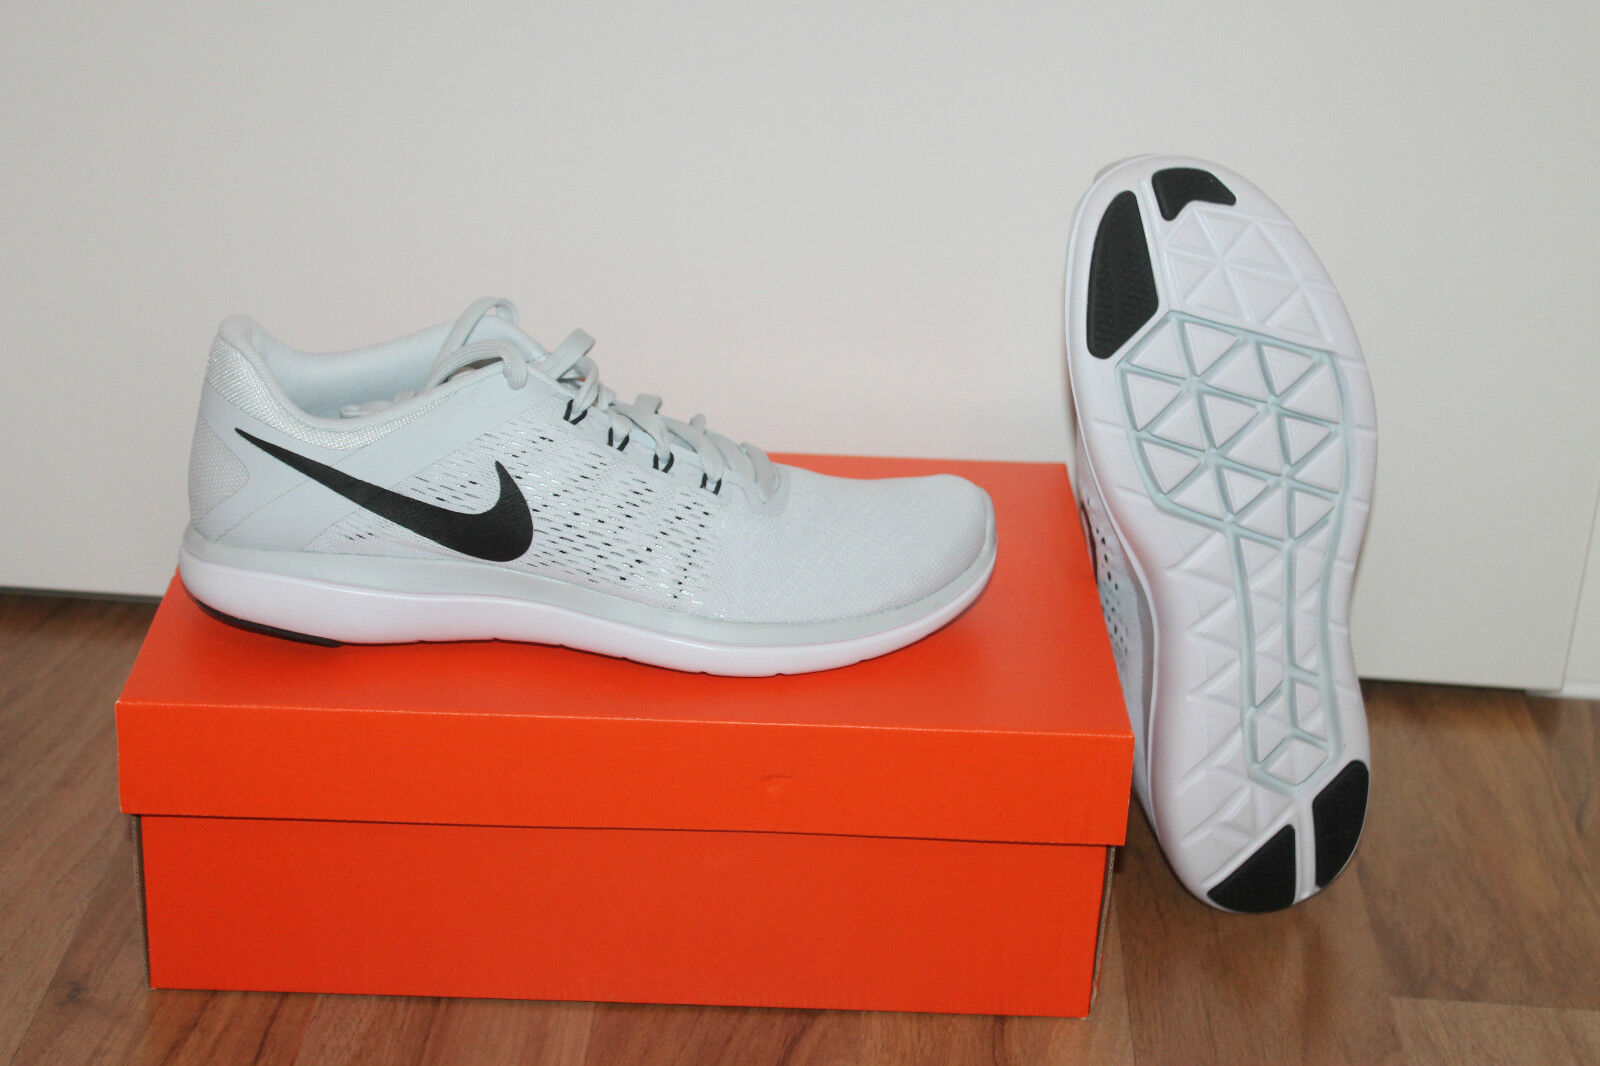 Nike Flessibile 2016 Da men Da Corsa Fitness Scarpa grey Bianco black